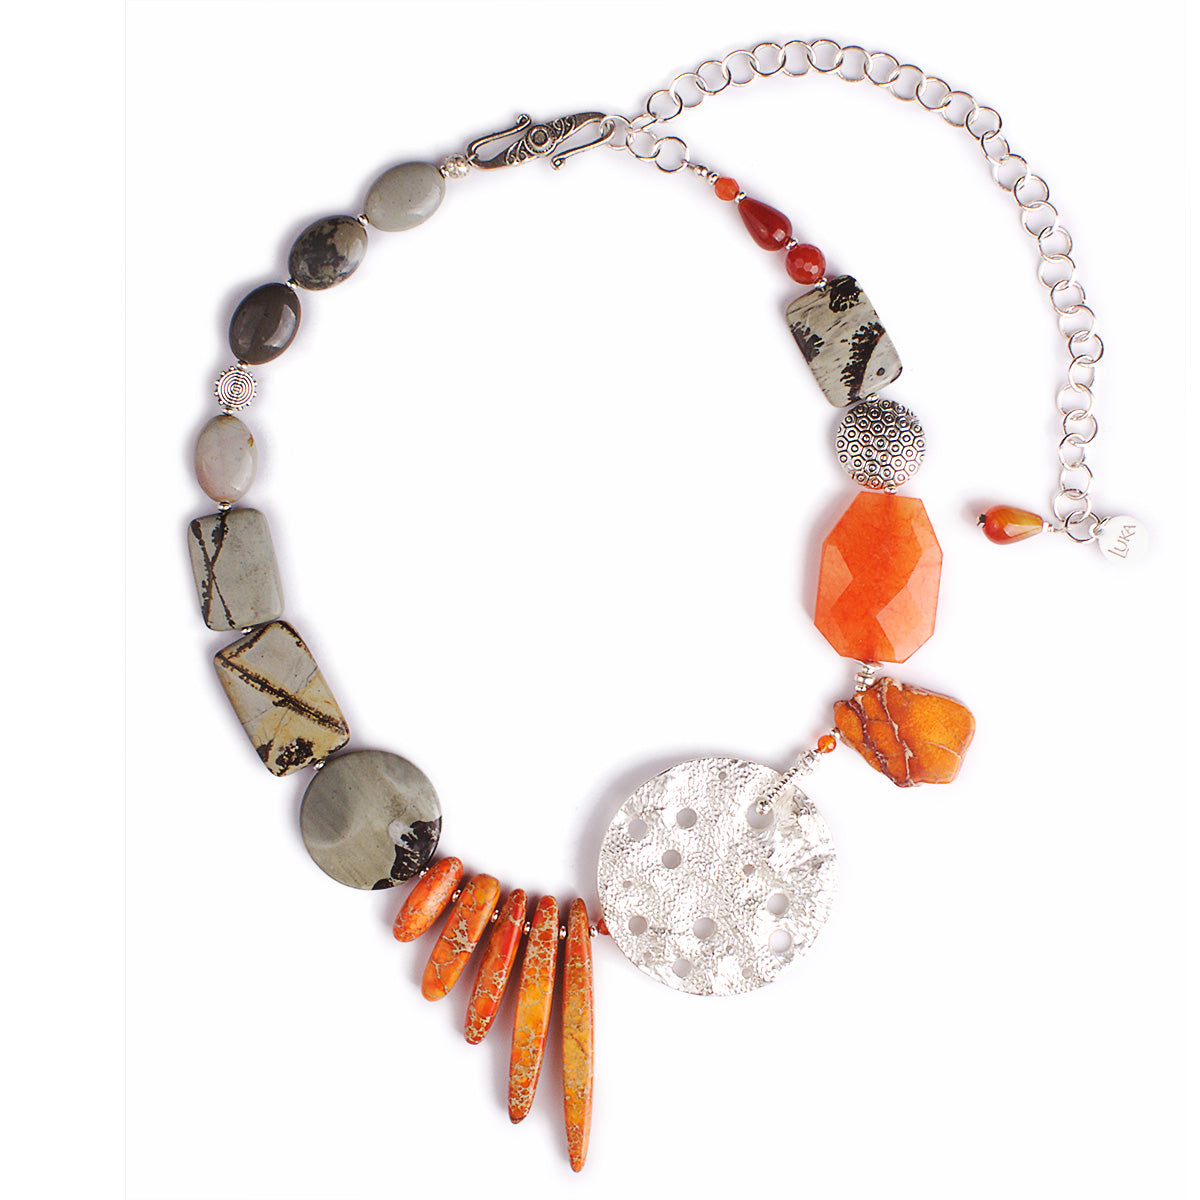 The Carnelian Rooftop Love Statement Necklace